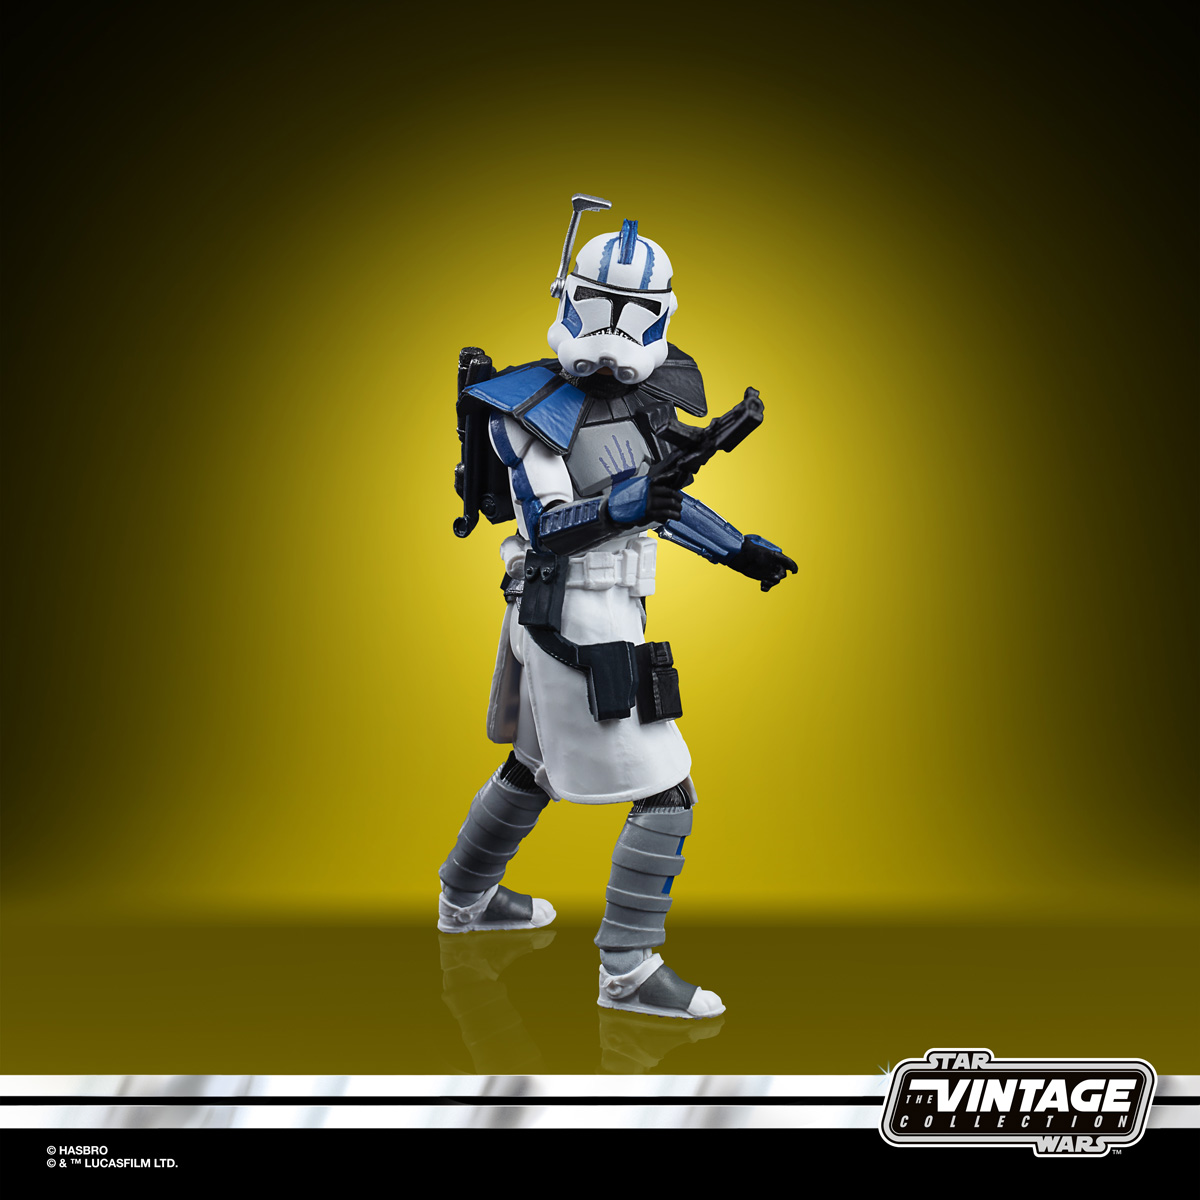 star-wars-the-vintage-collection-star-wars-the-clone-wars-501st-legion-arc-troopers-figure-3-pack-oop-6